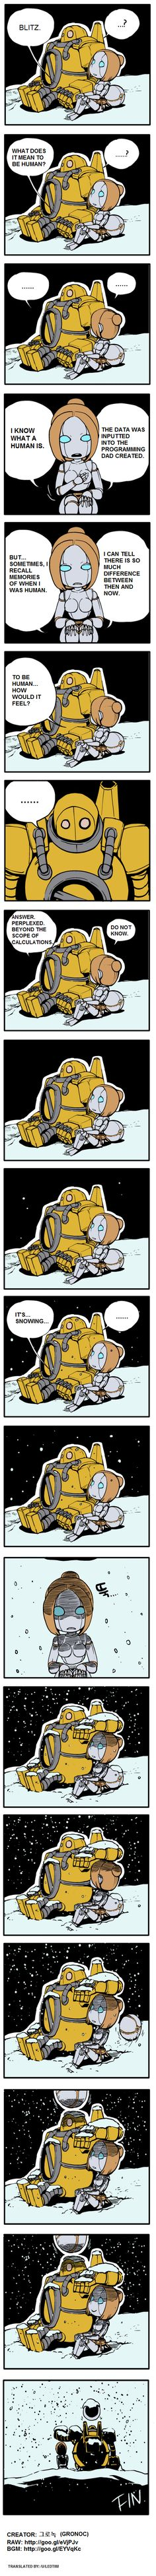 Being Human ft. Orianna & Blitzcrank AWWW SO CUUUUUUTE